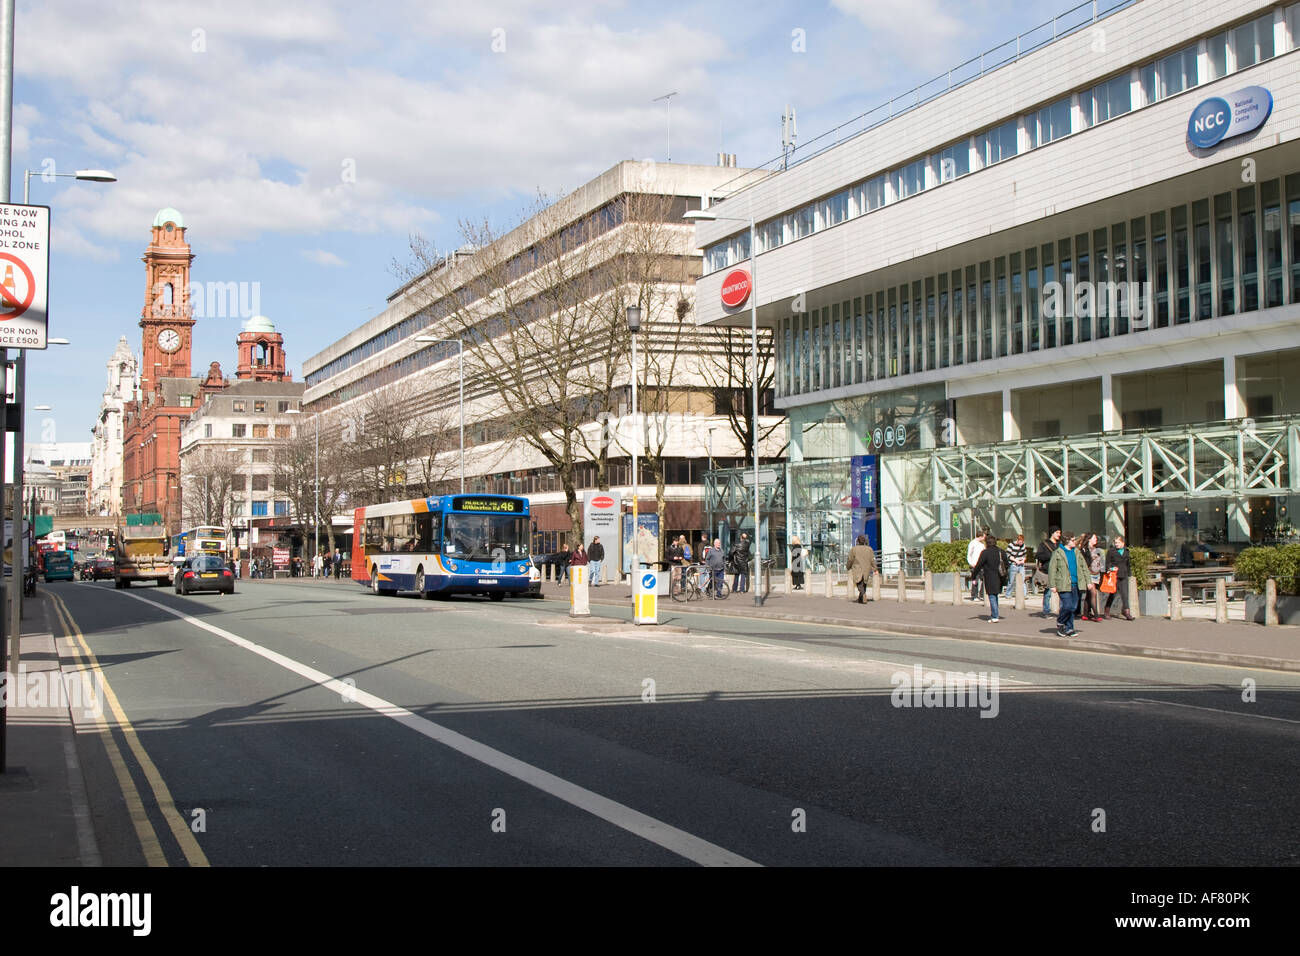 National Computing Centre and BBC, Oxford Rd, Manchester - Stock Image